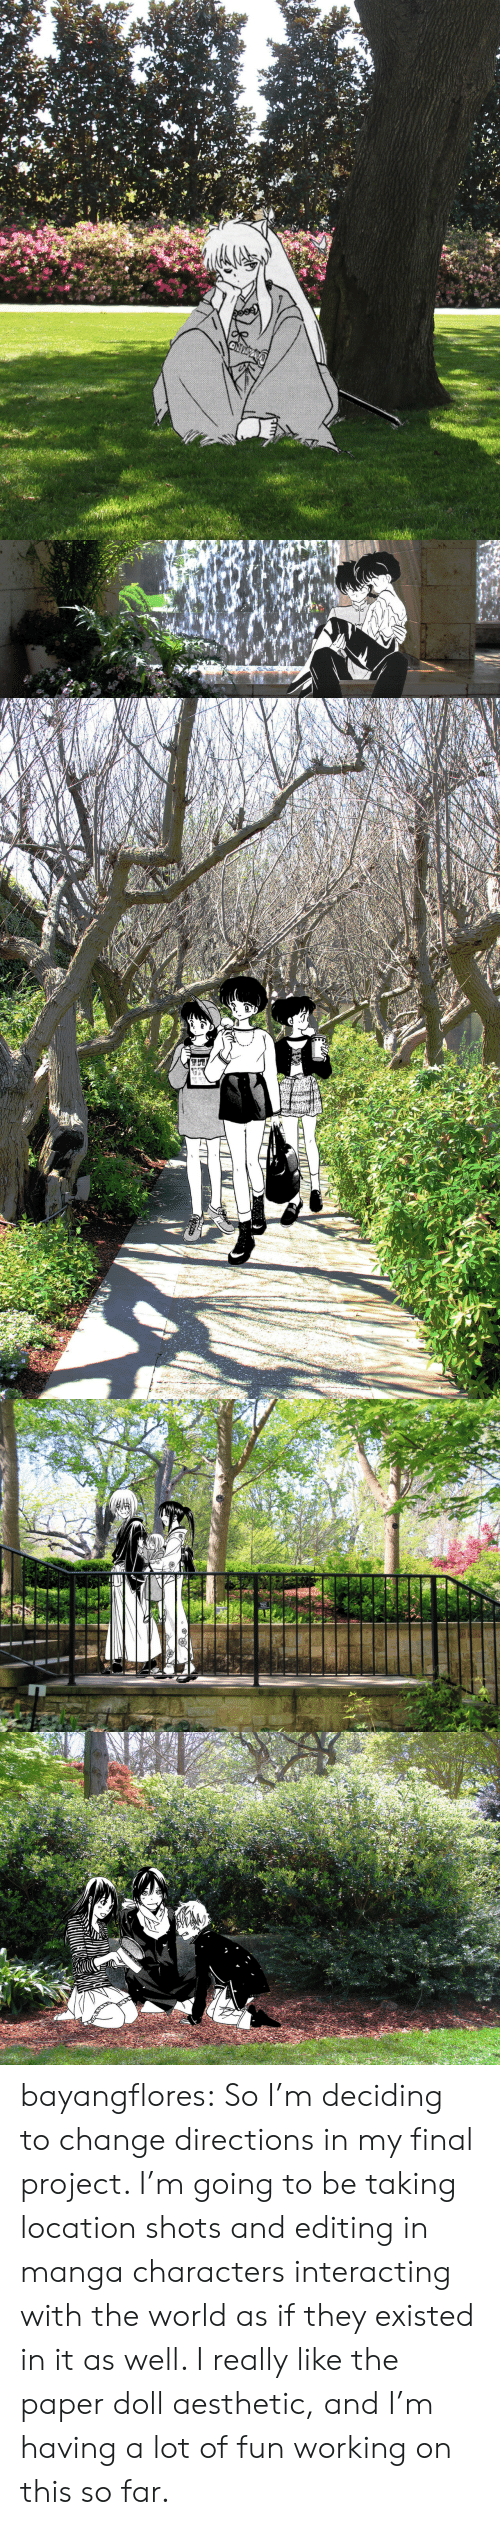 Interacting: ONLY   www bayangflores:  So I'm deciding to change directions in my final project. I'm going to be taking location shots and editing in manga characters interacting with the world as if they existed in it as well. I really like the paper doll aesthetic, and I'm having a lot of fun working on this so far.